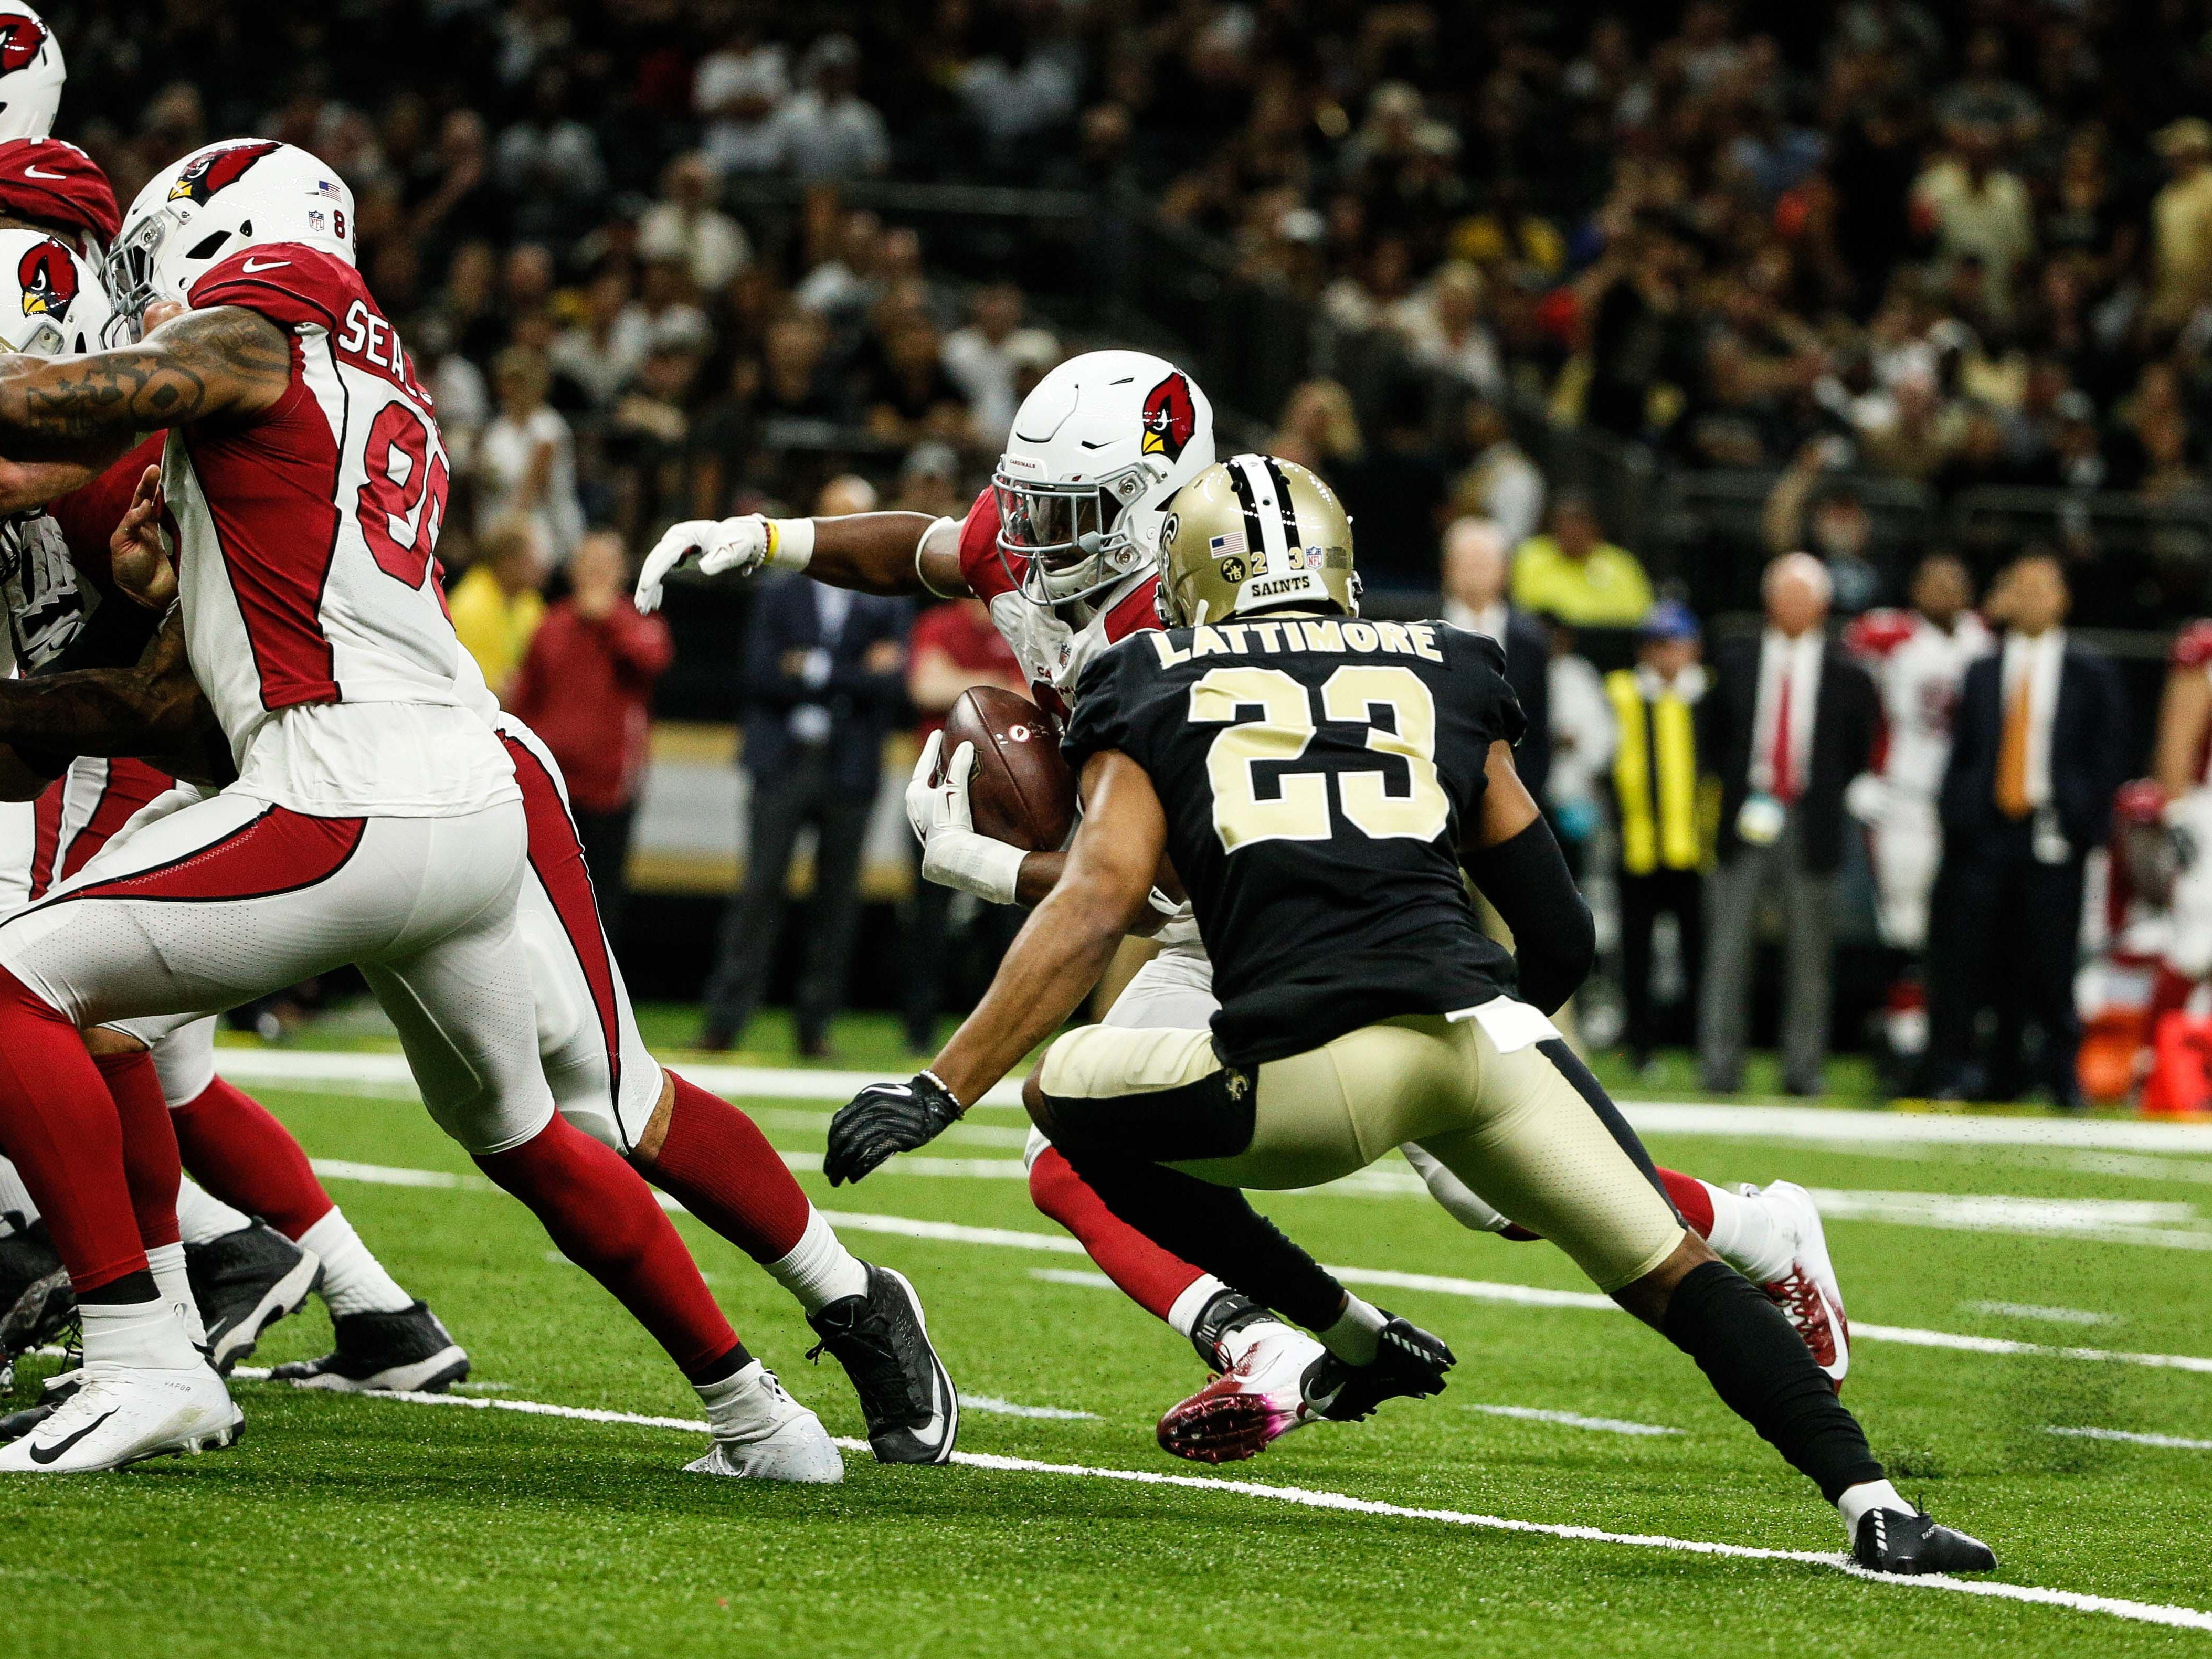 Aug 17, 2018: Arizona Cardinals running back David Johnson (31) runs past New Orleans Saints cornerback Marshon Lattimore (23) during the second quarter of a preseason game at the Mercedes-Benz Superdome.